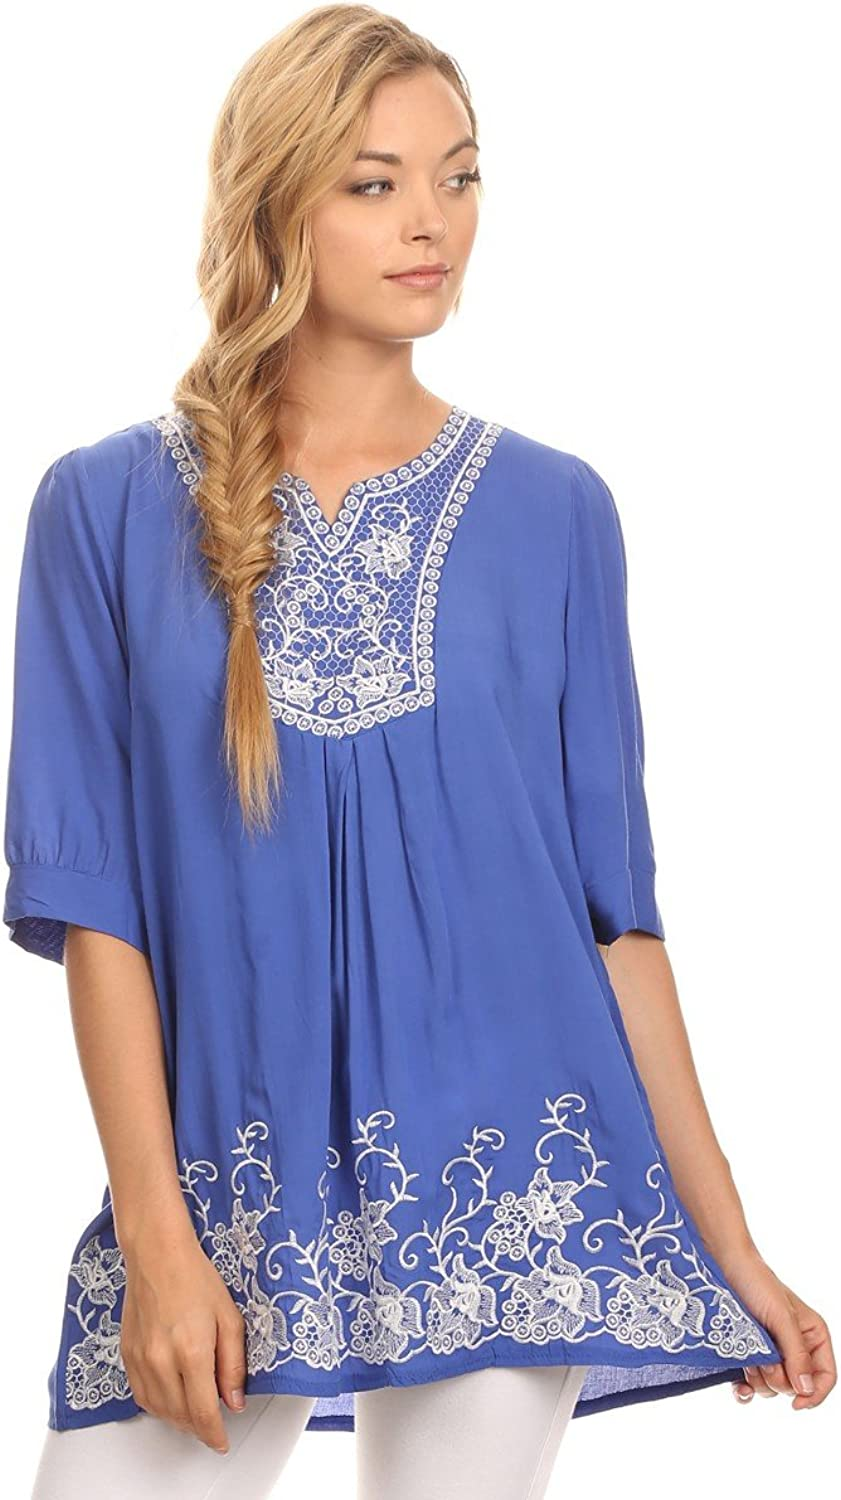 Universal Fashion Floral Embroidered VNeck Tunic Blouse with 3 4 Sleeves